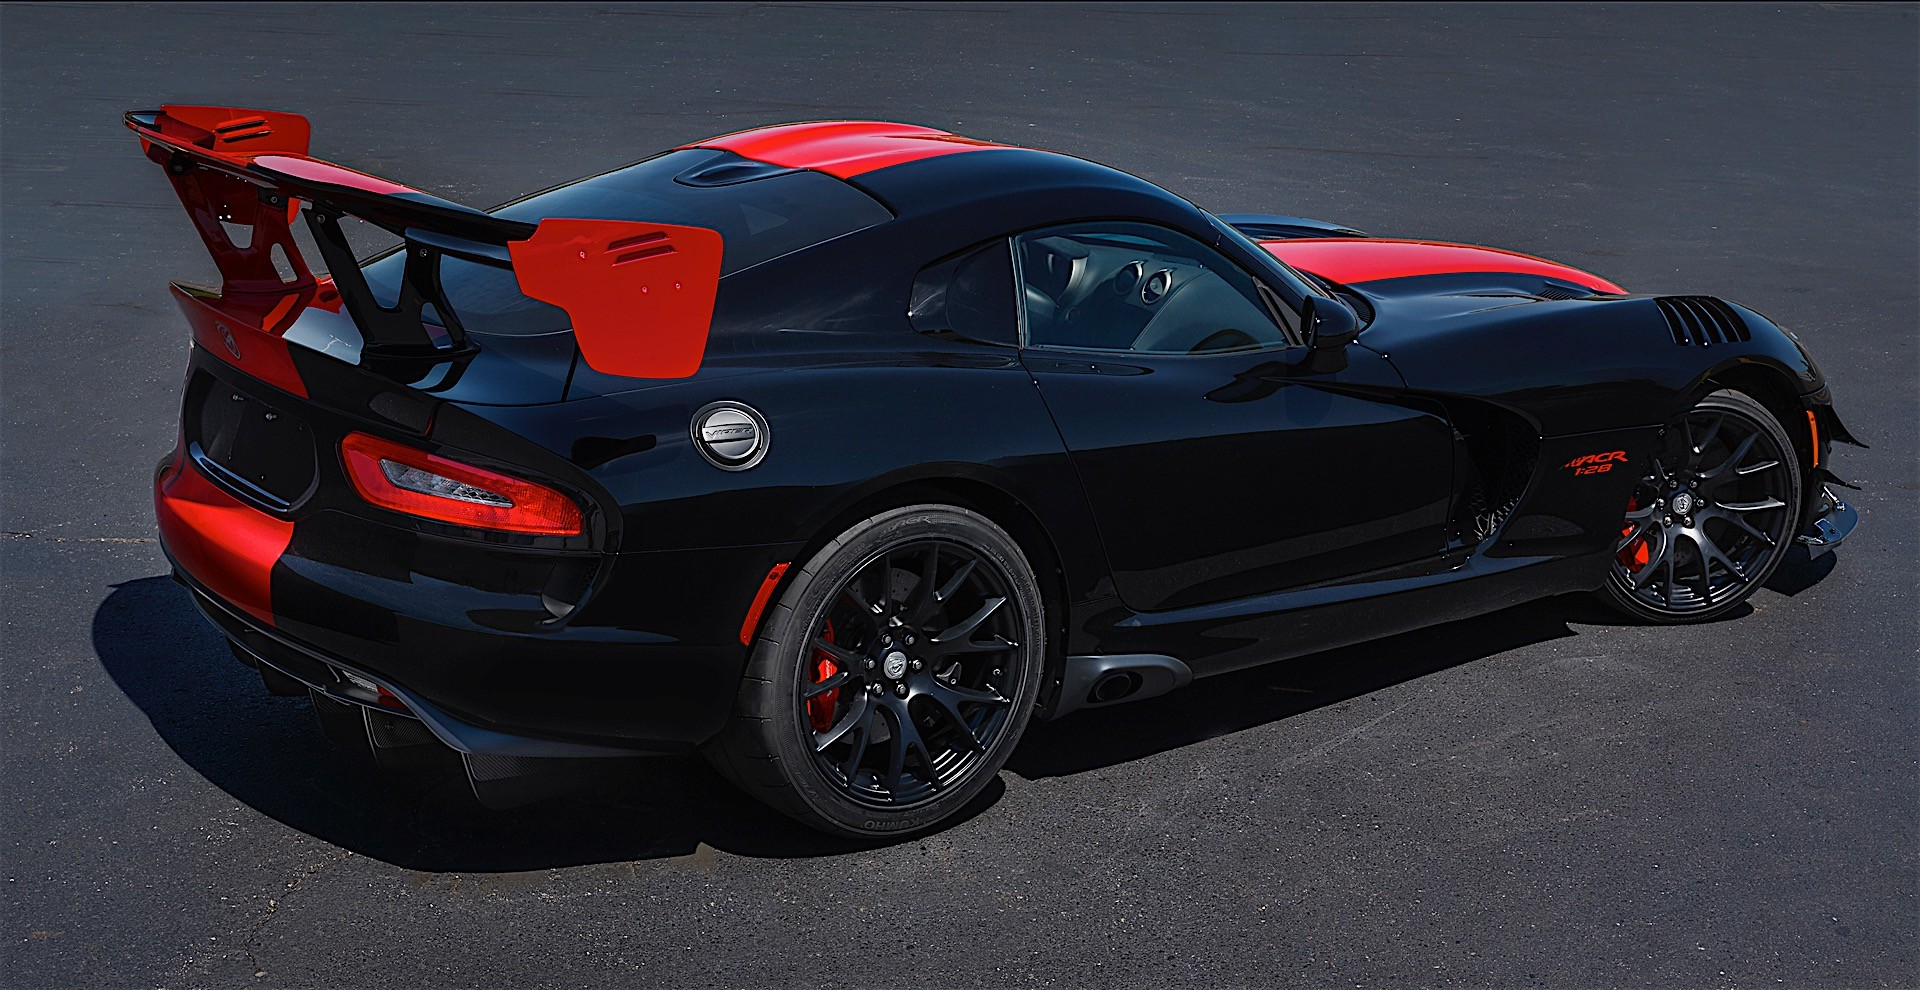 2017 Dodge Viper Priced The Same As 2016 Model Starts At 92990